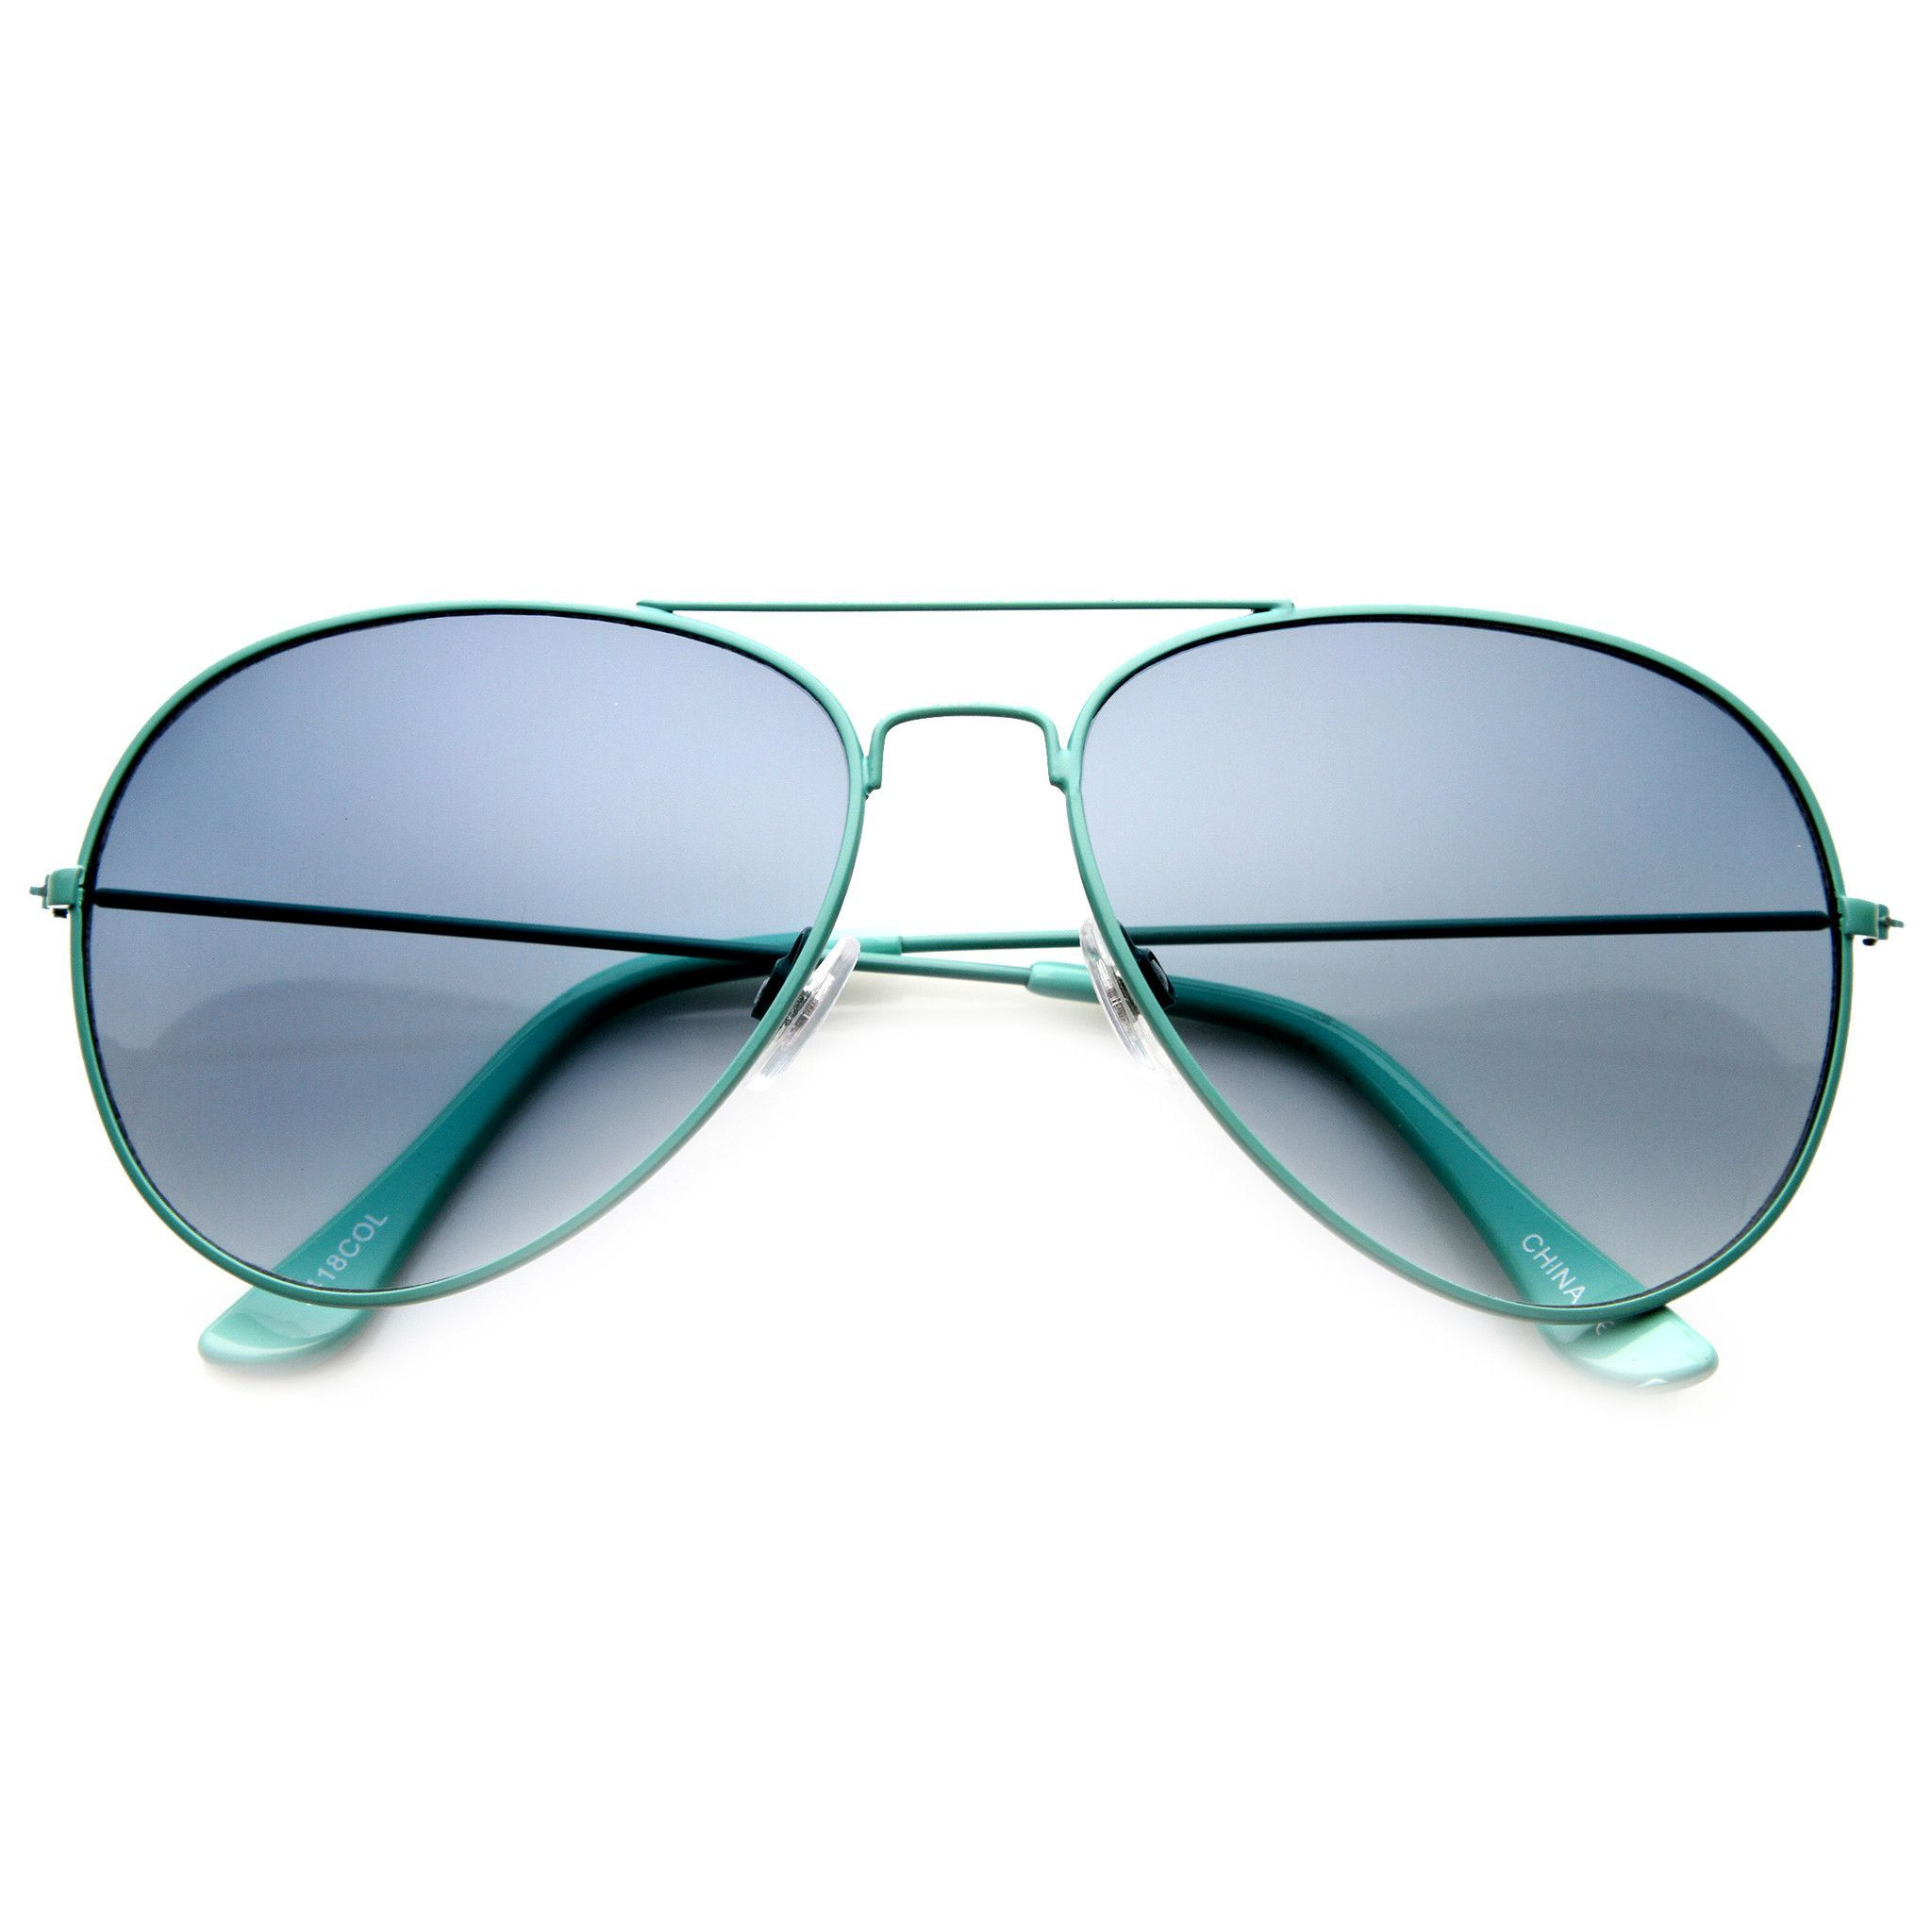 382c2b8aa4927 Description - Measurements - Shipping - Classic metal teardrop aviator with  eye catching colored frames